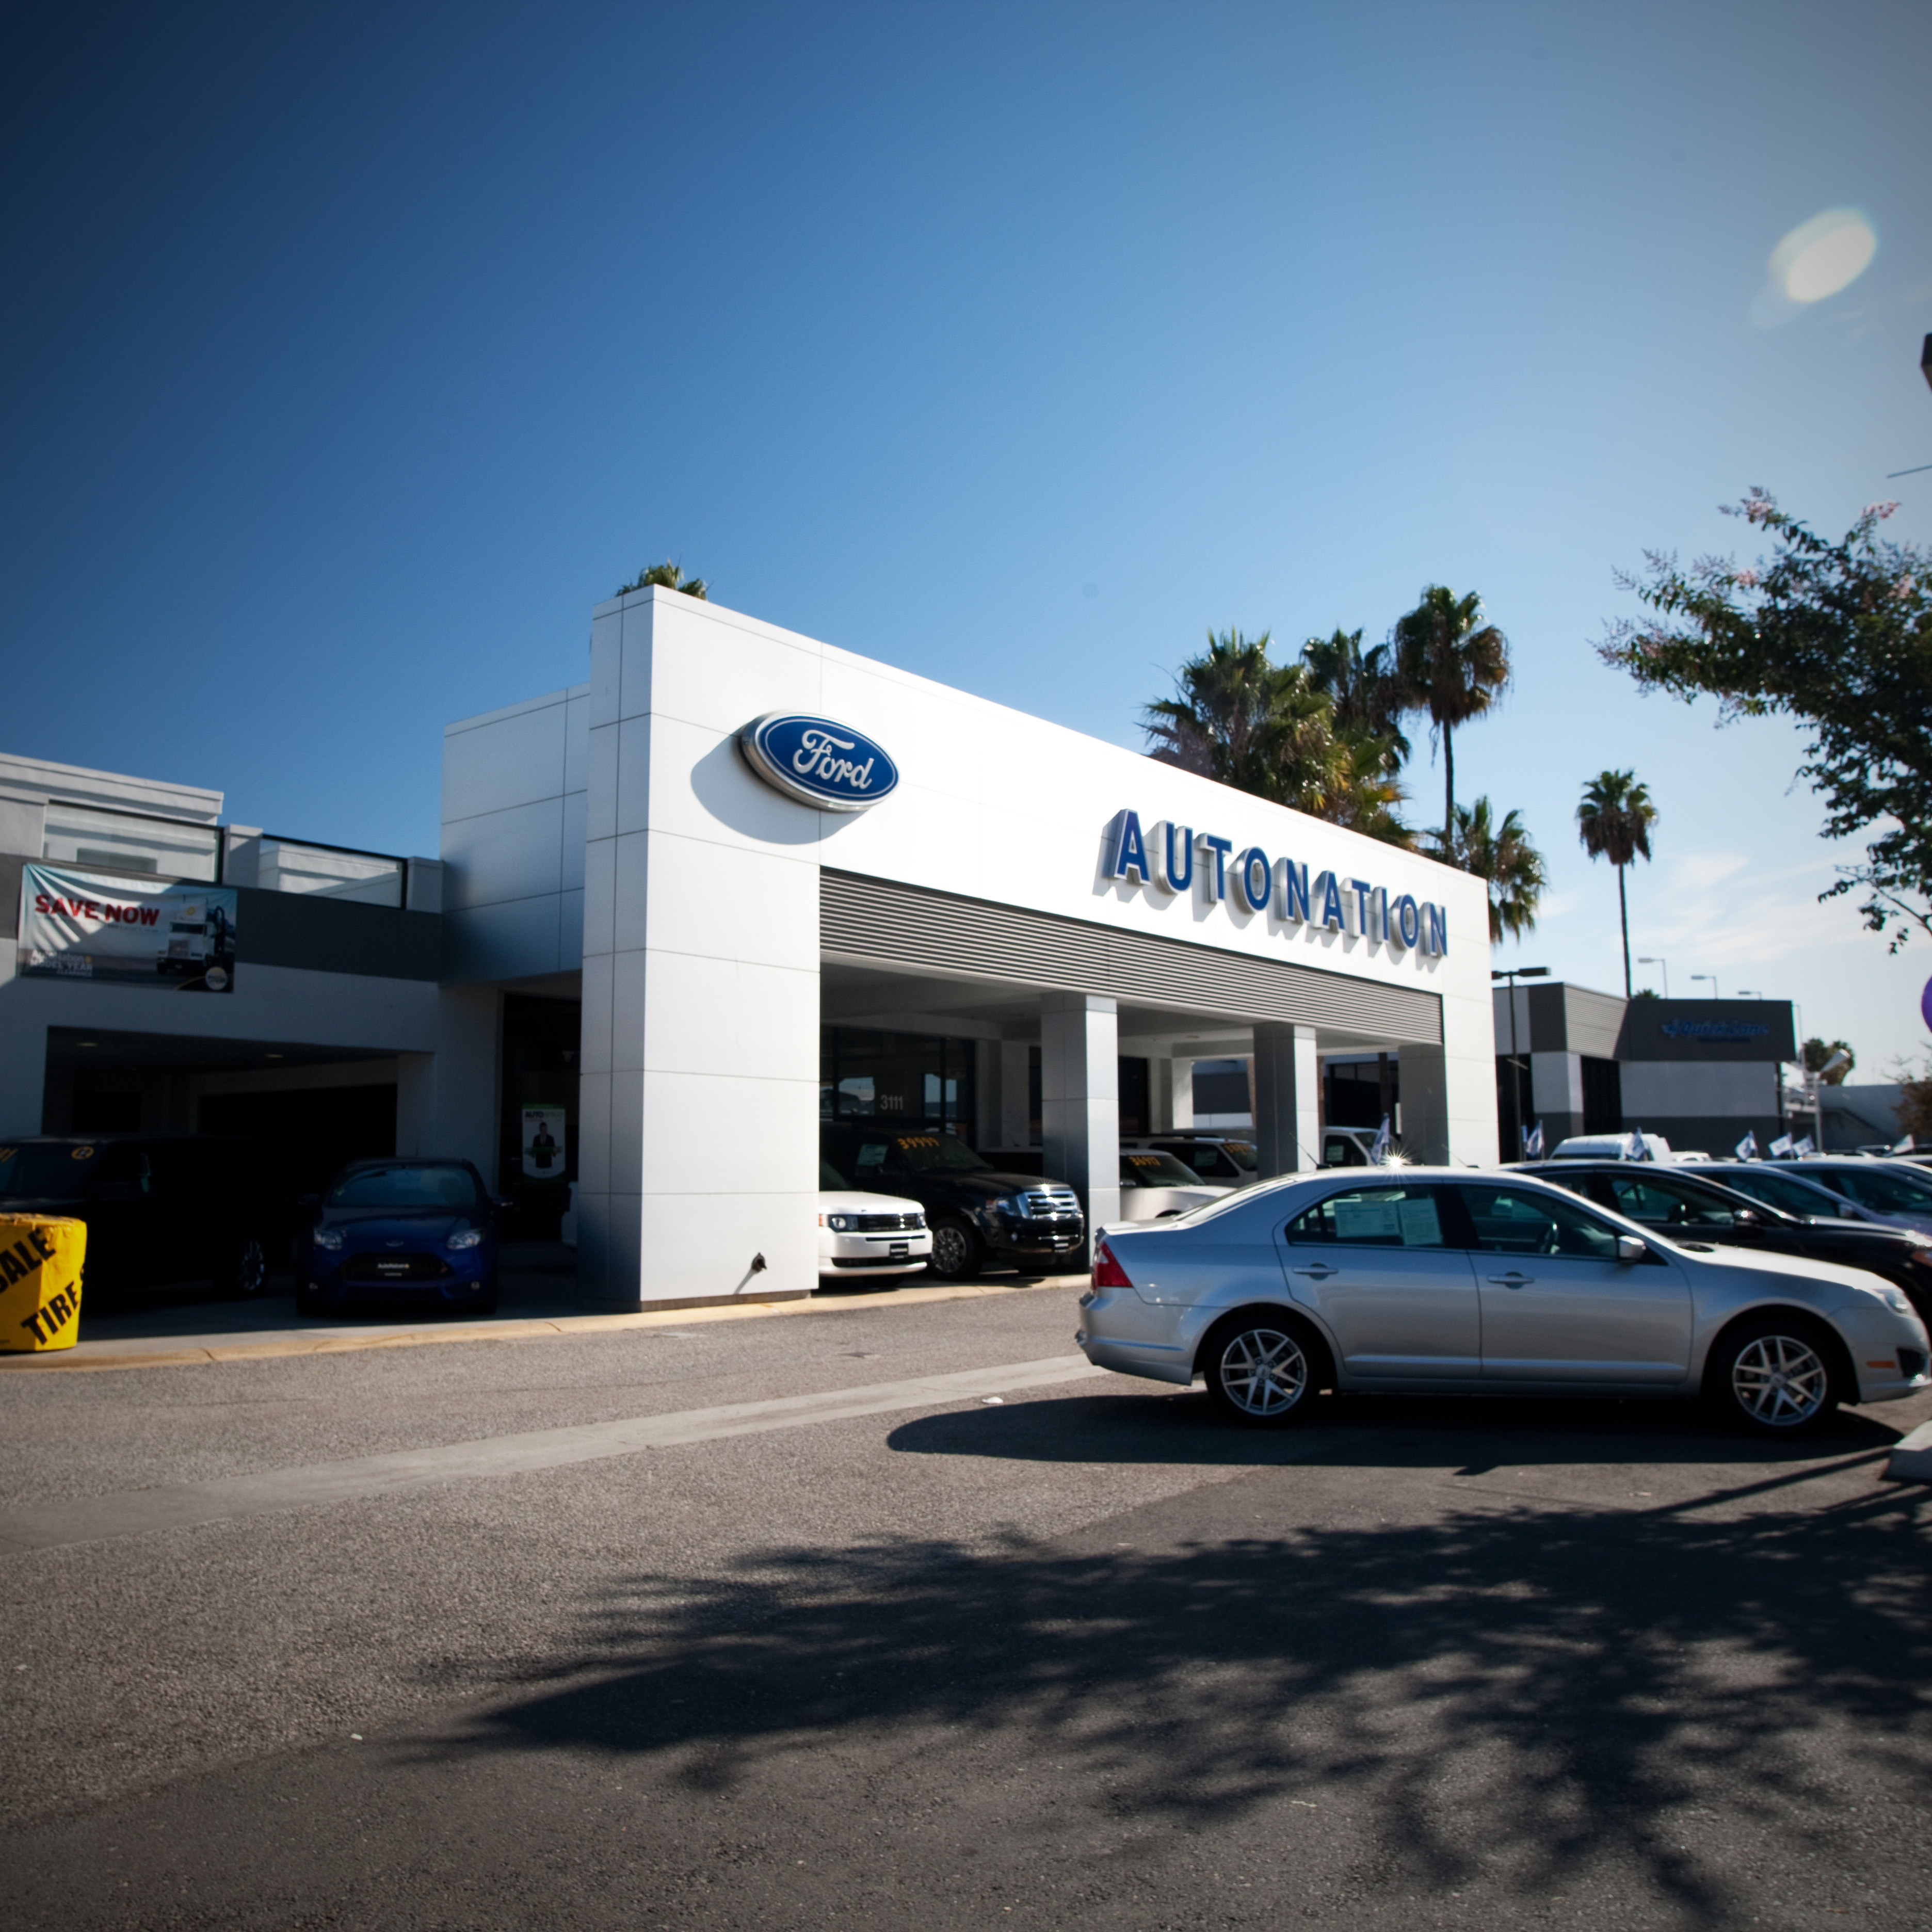 Autonation ford torrance at 3111 pacific coast highway for Autonation mercedes benz california